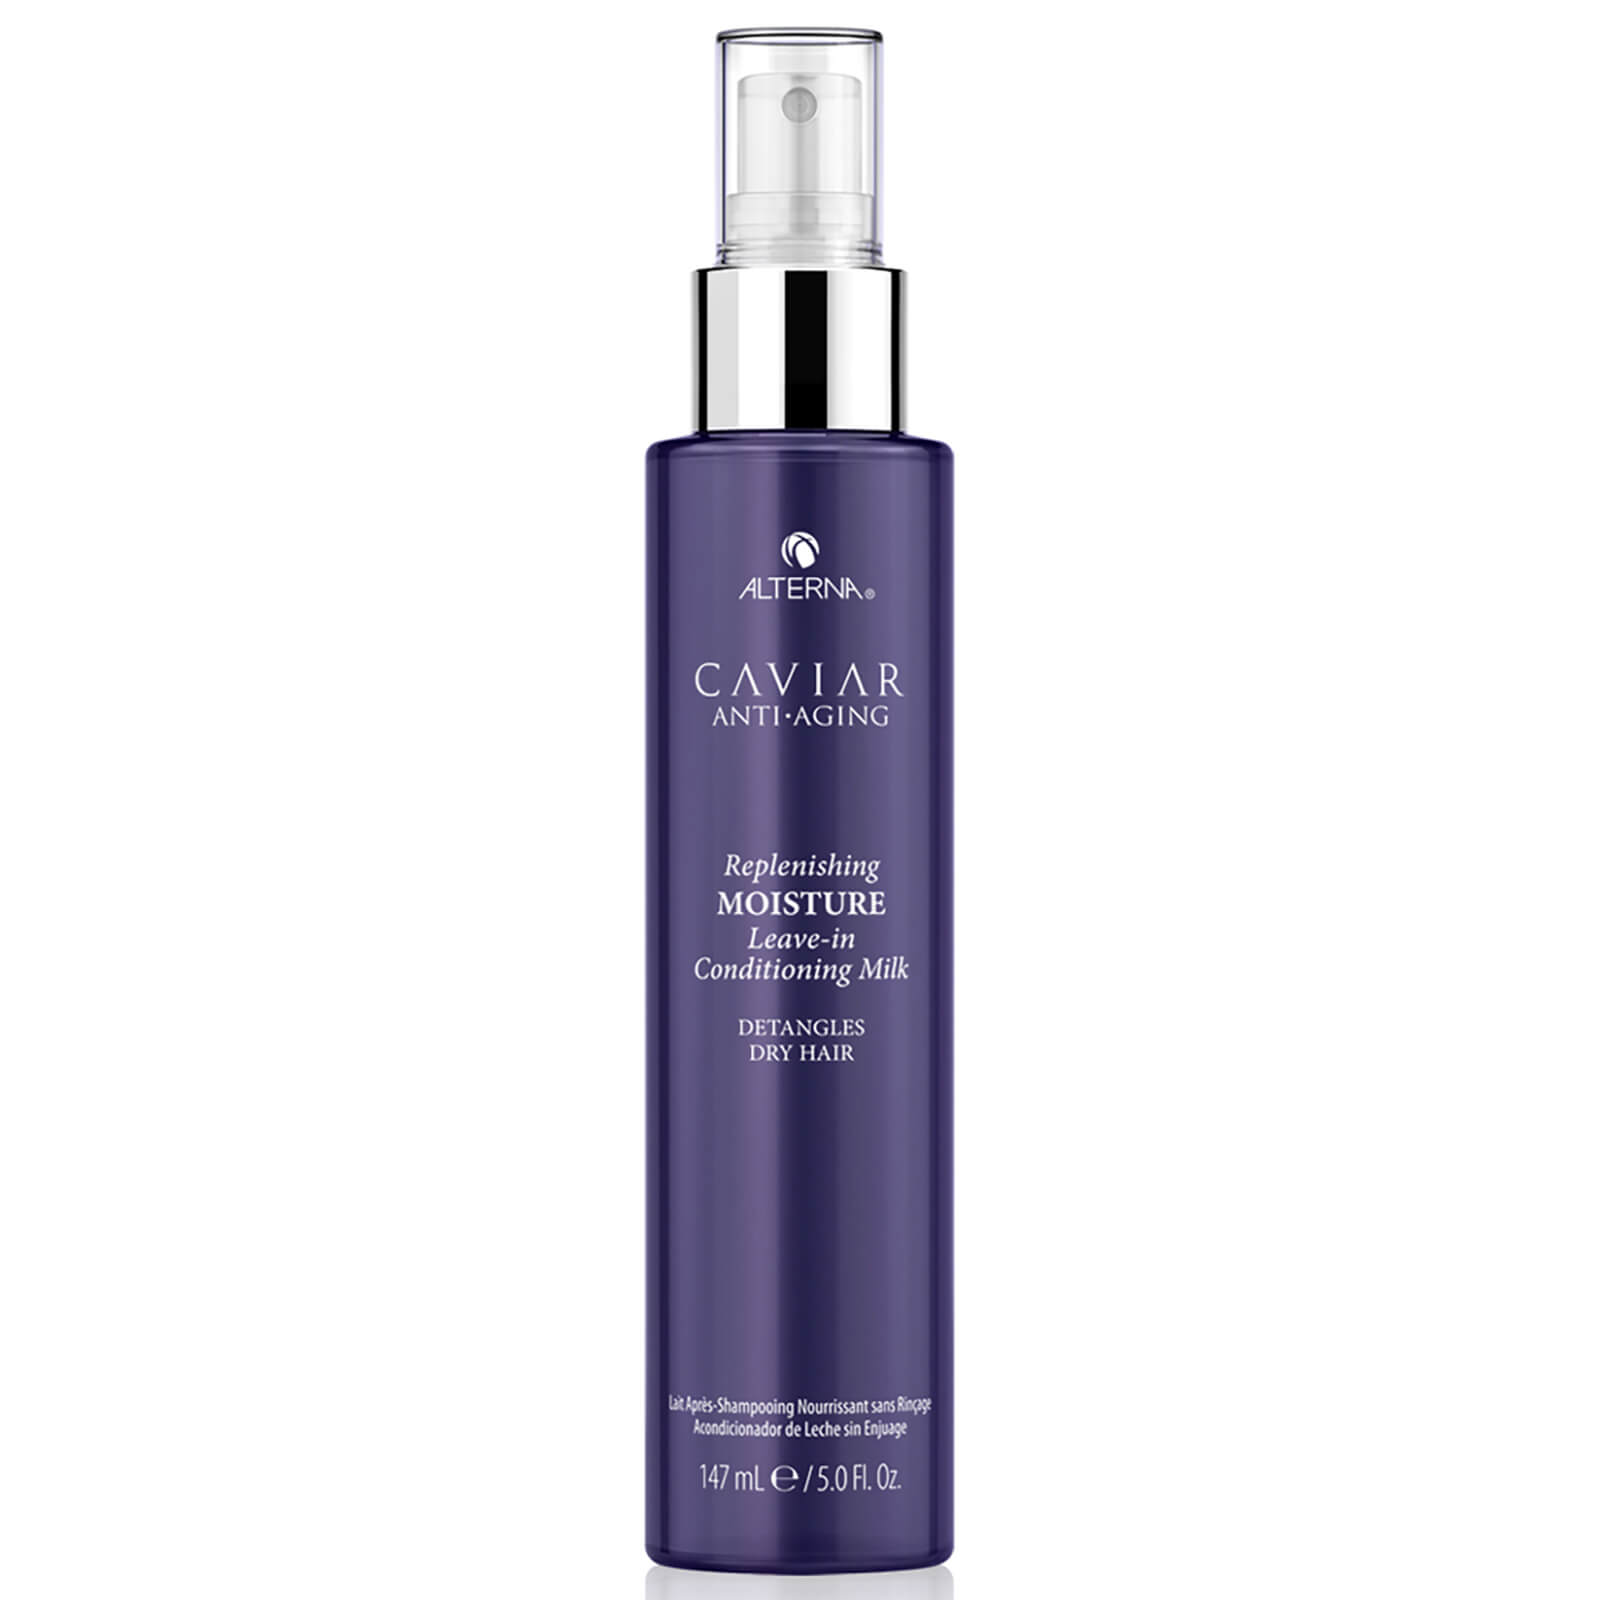 Alterna Caviar Replenishing Moisture Leave-in Conditioning Milk 147 ml